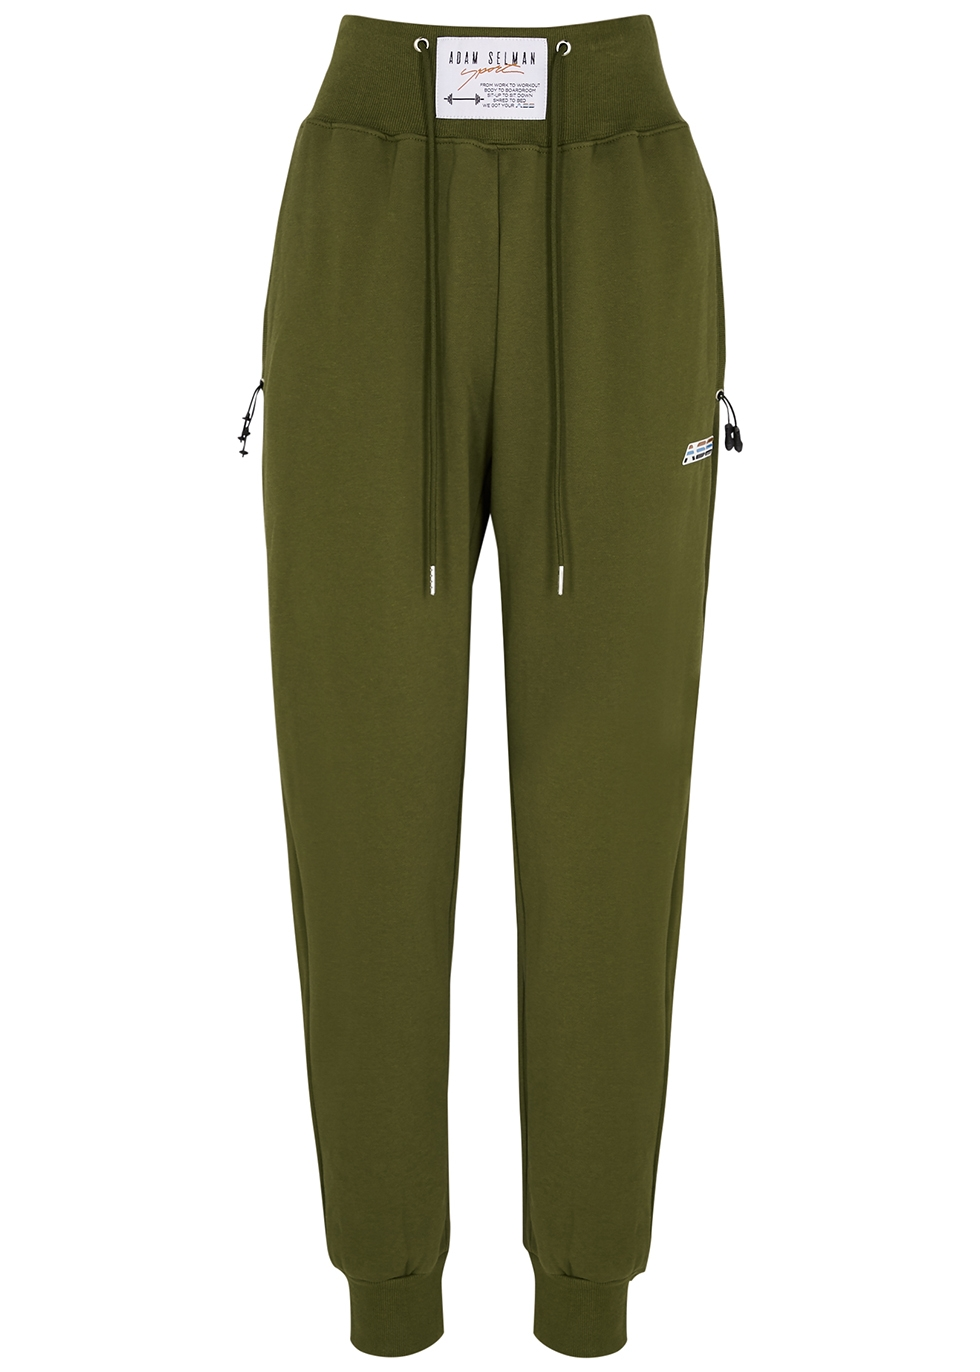 Army green cotton sweatpants